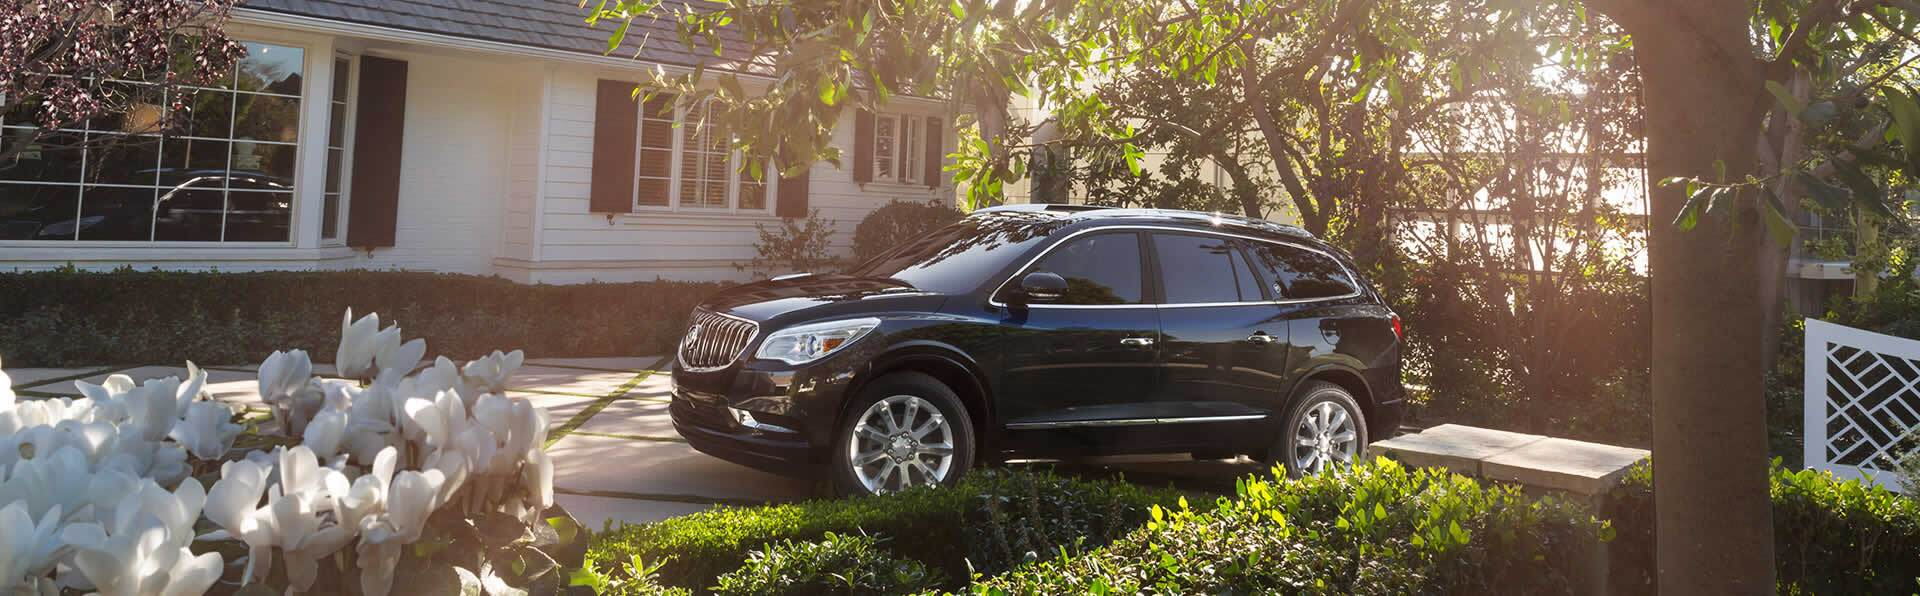 New Buick Envision at Team Automotive